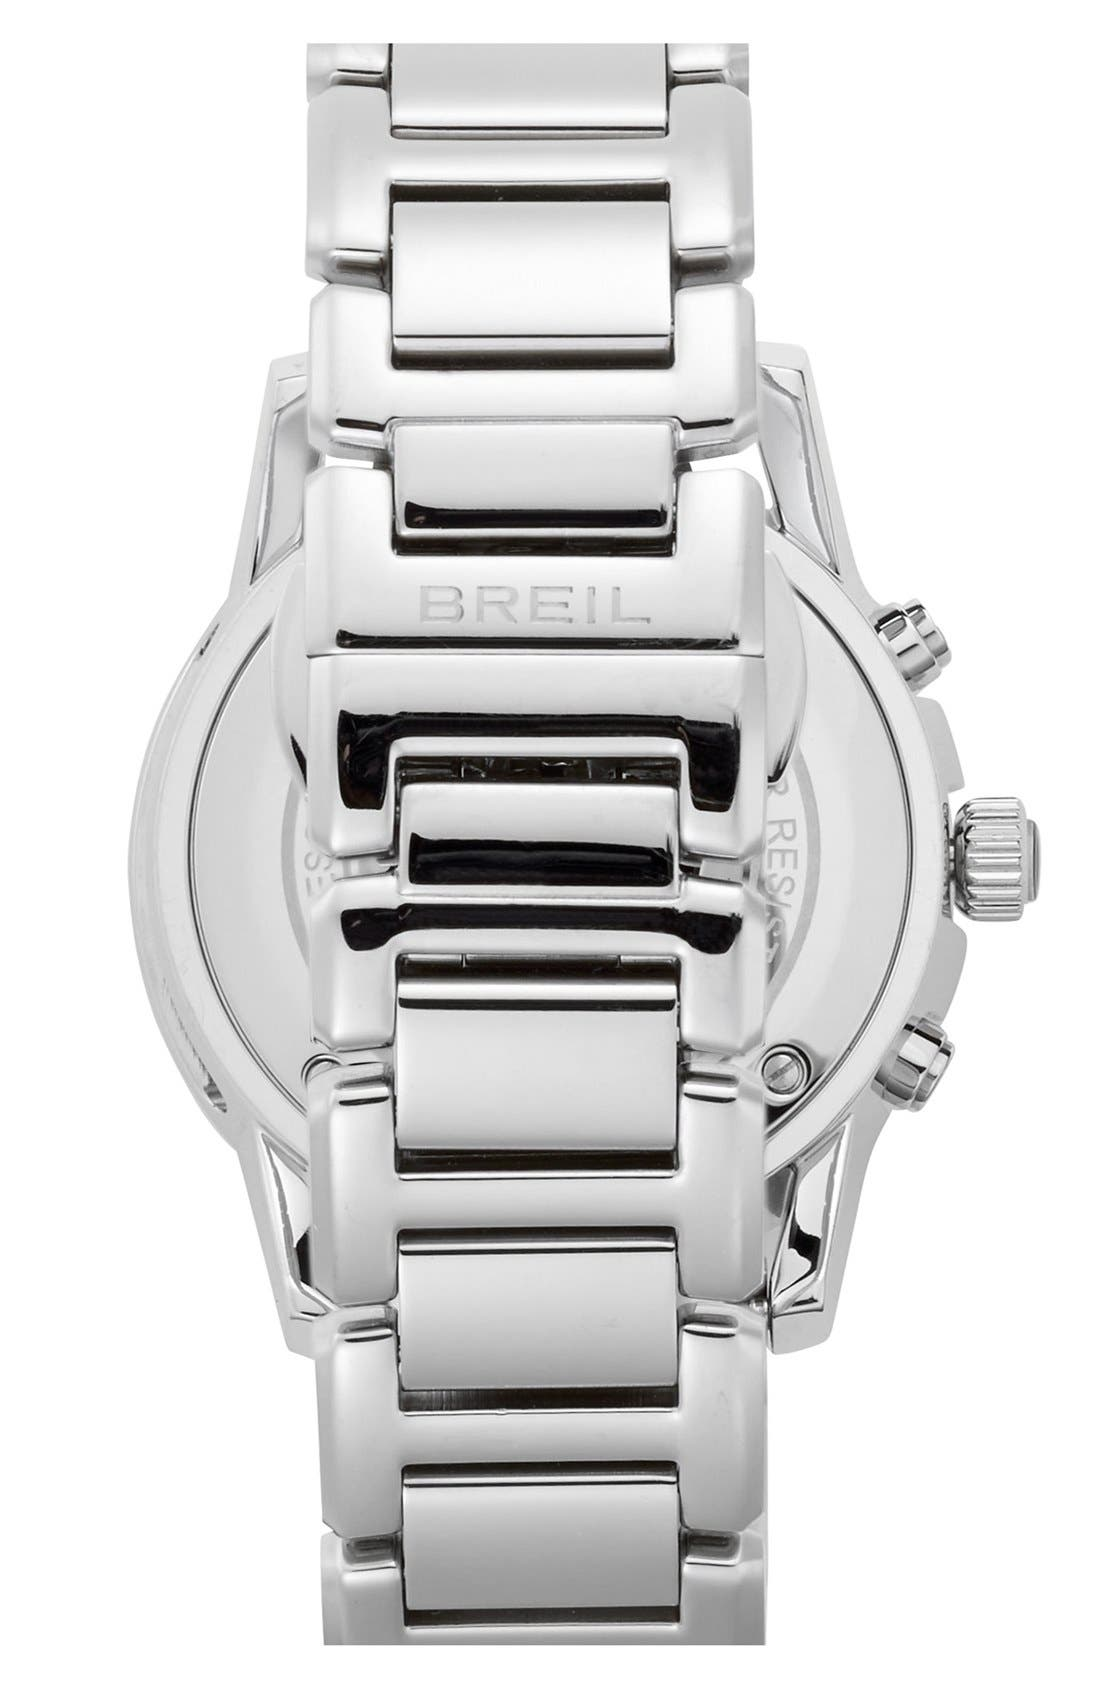 Alternate Image 3  - Breil 'Orchestra' Crystal Bezel Chronograph Bracelet Watch, 37mm